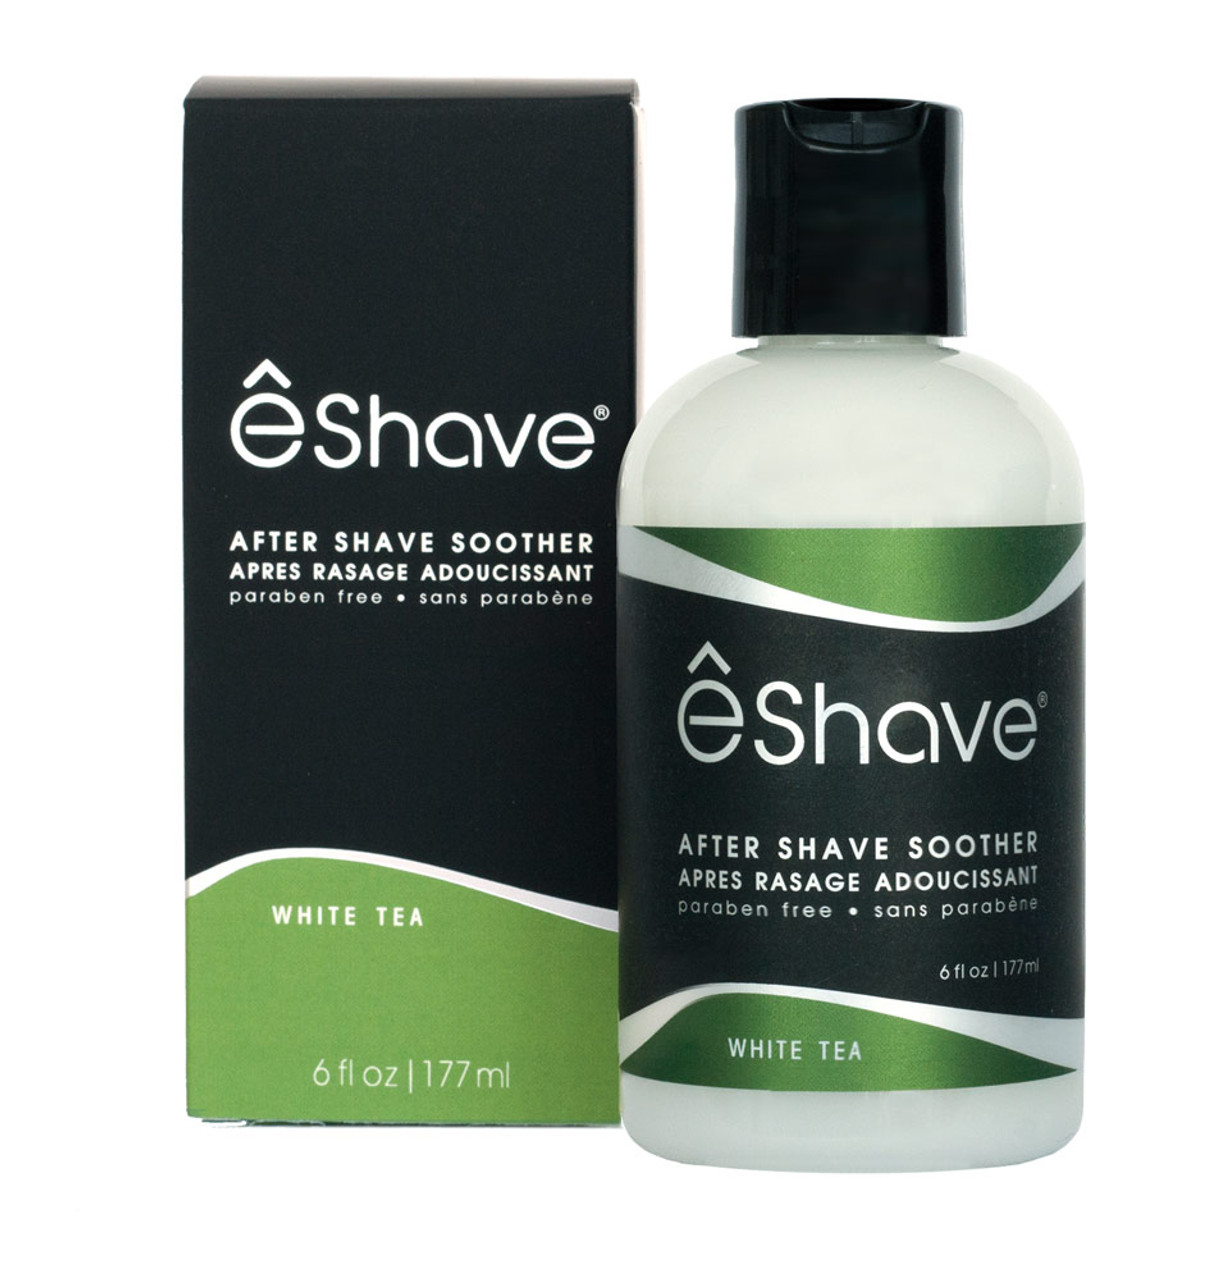 eShave White Tea After Shave Soother